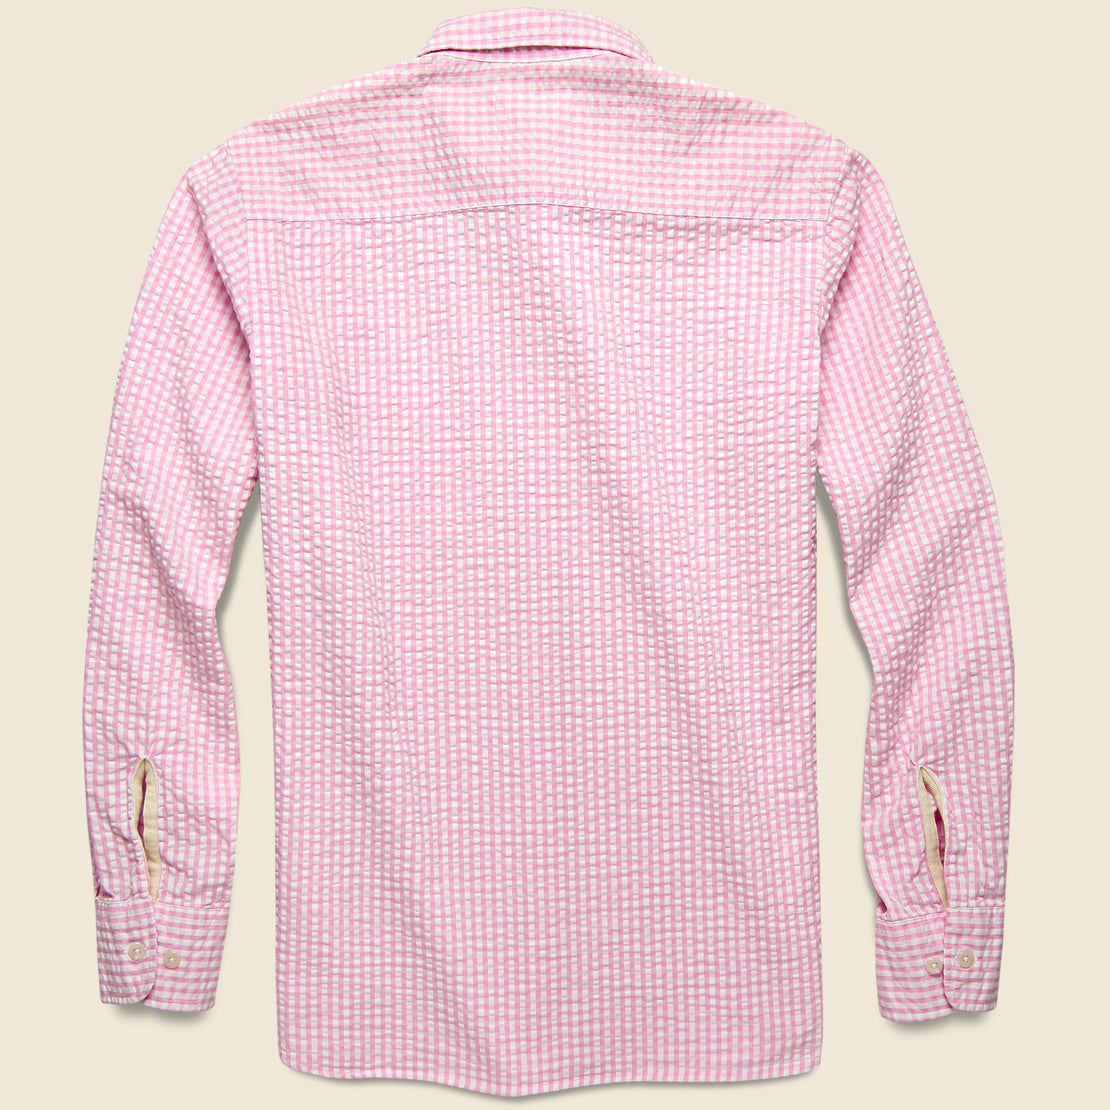 Everyday Shirt - Pink Gingham Seersucker